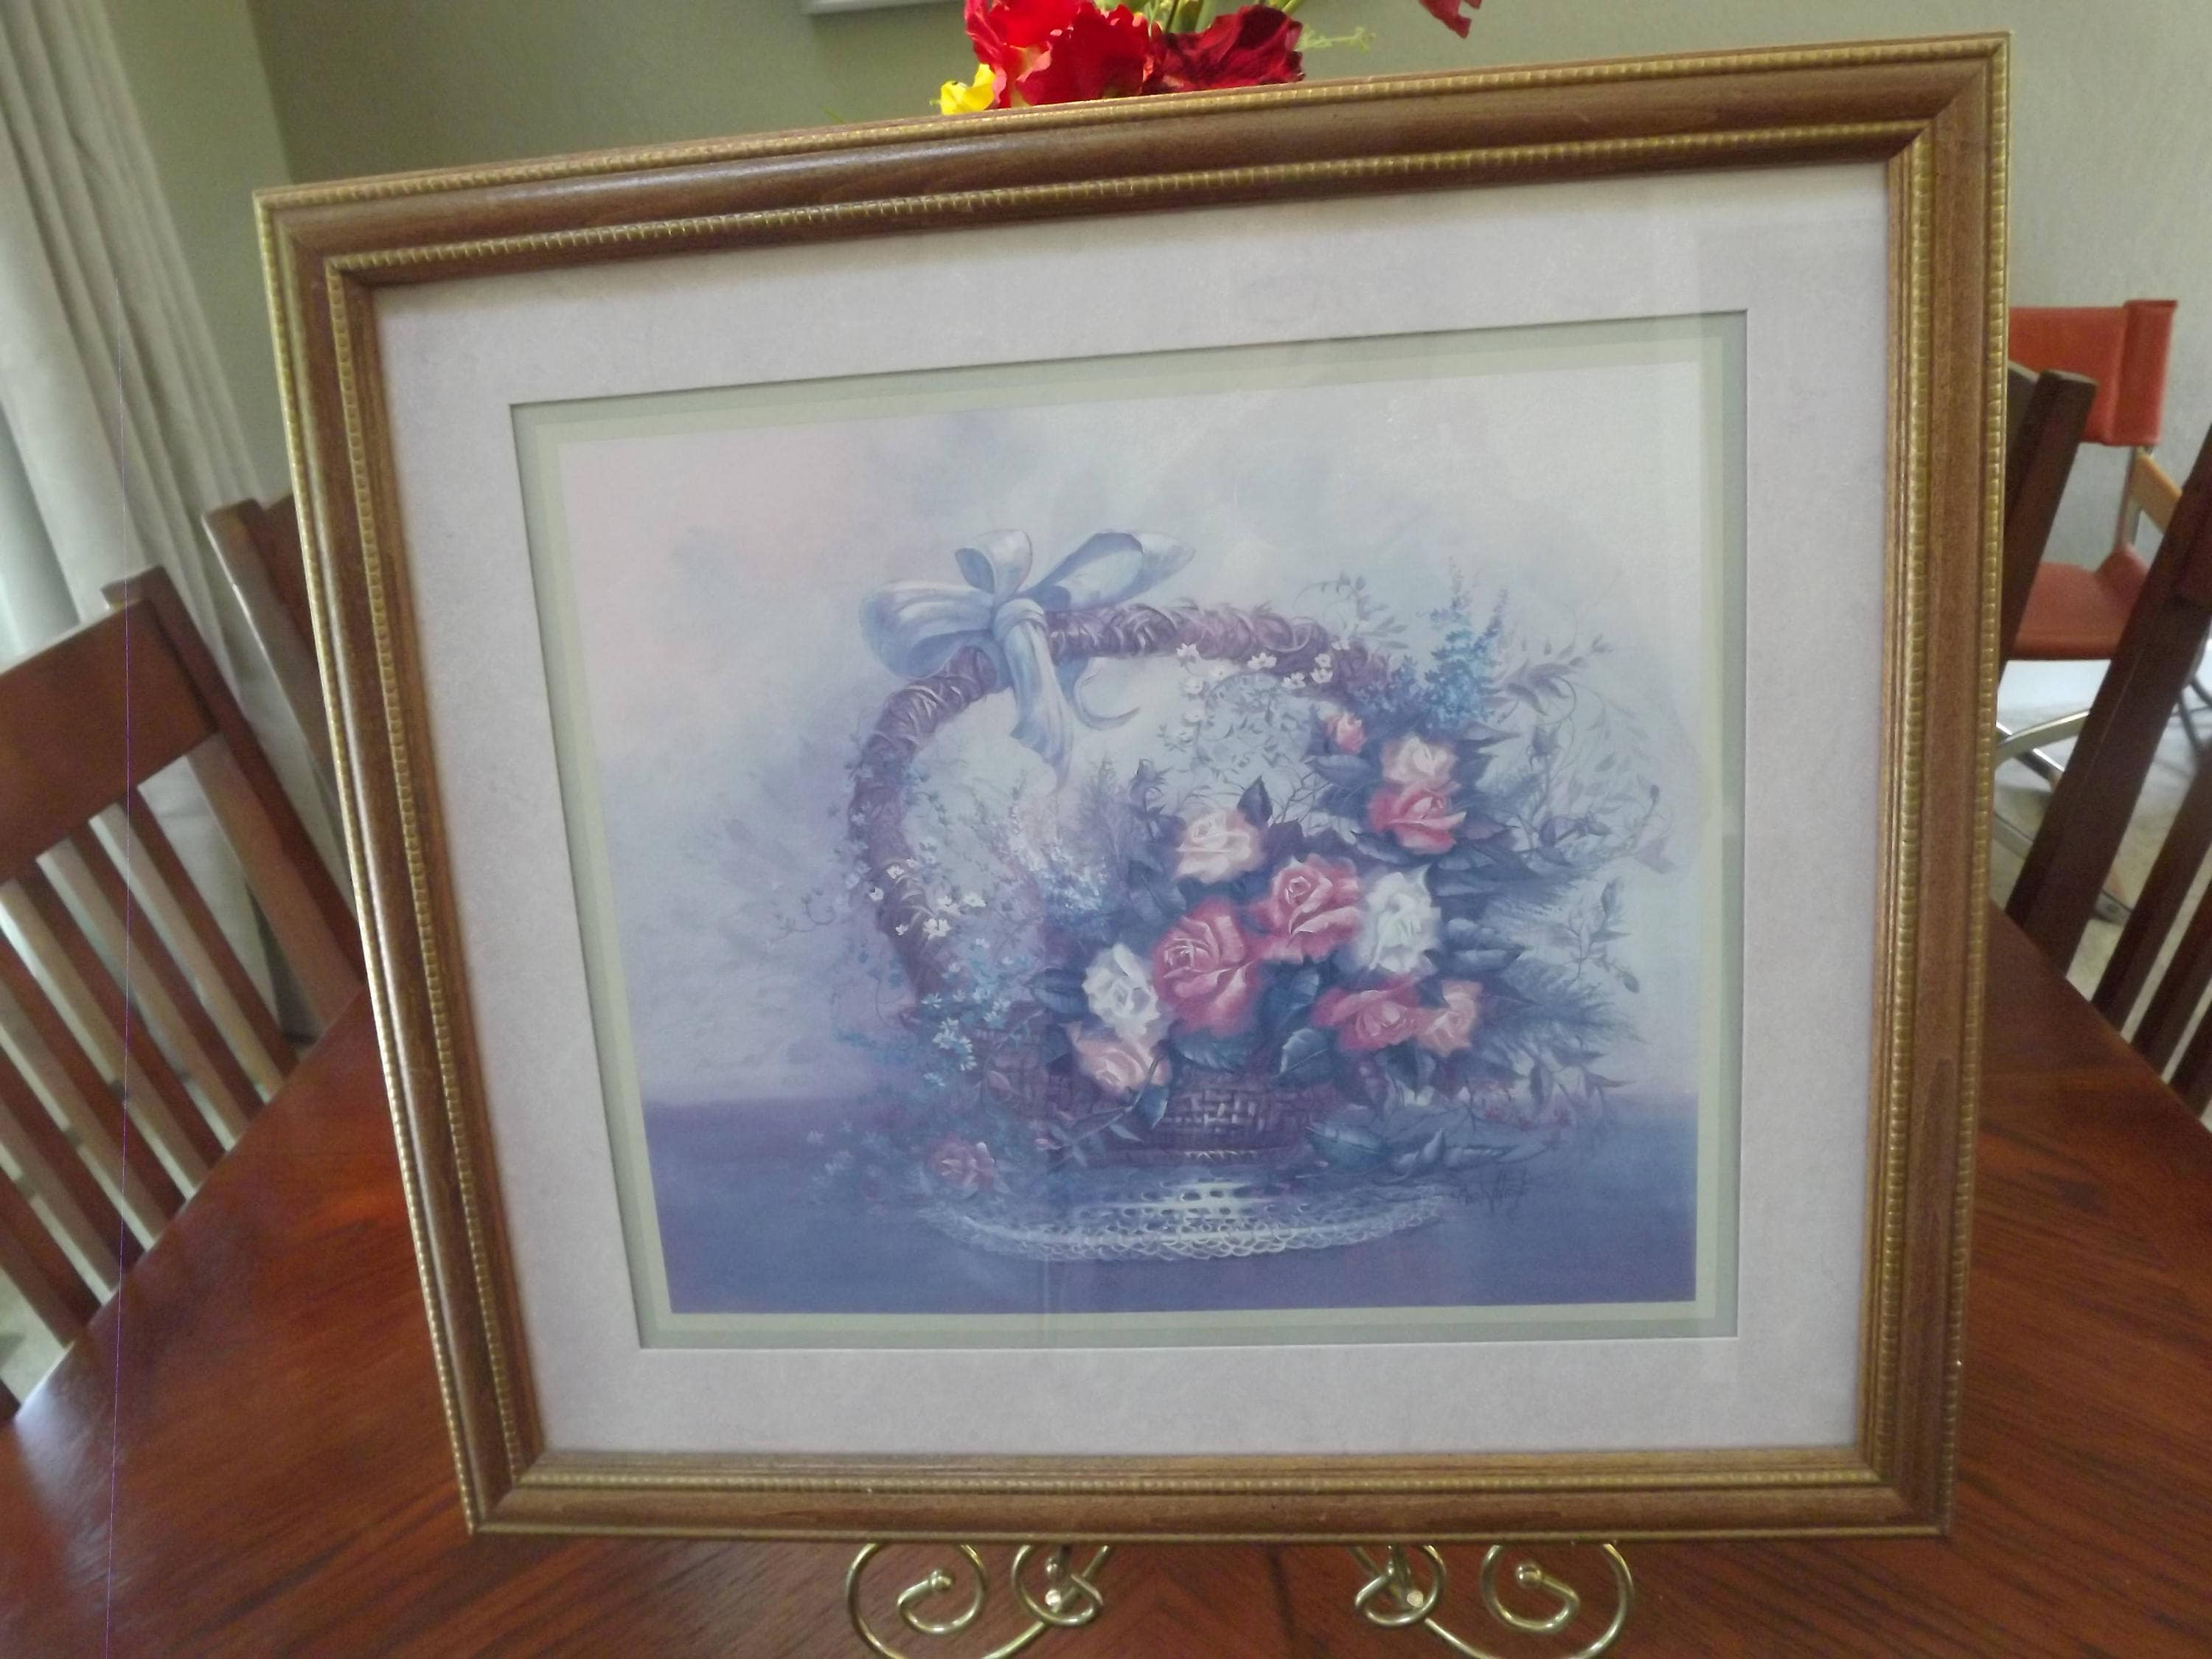 Retired Home Interiors And Gifts Lithograph By Carl Valente Etsy